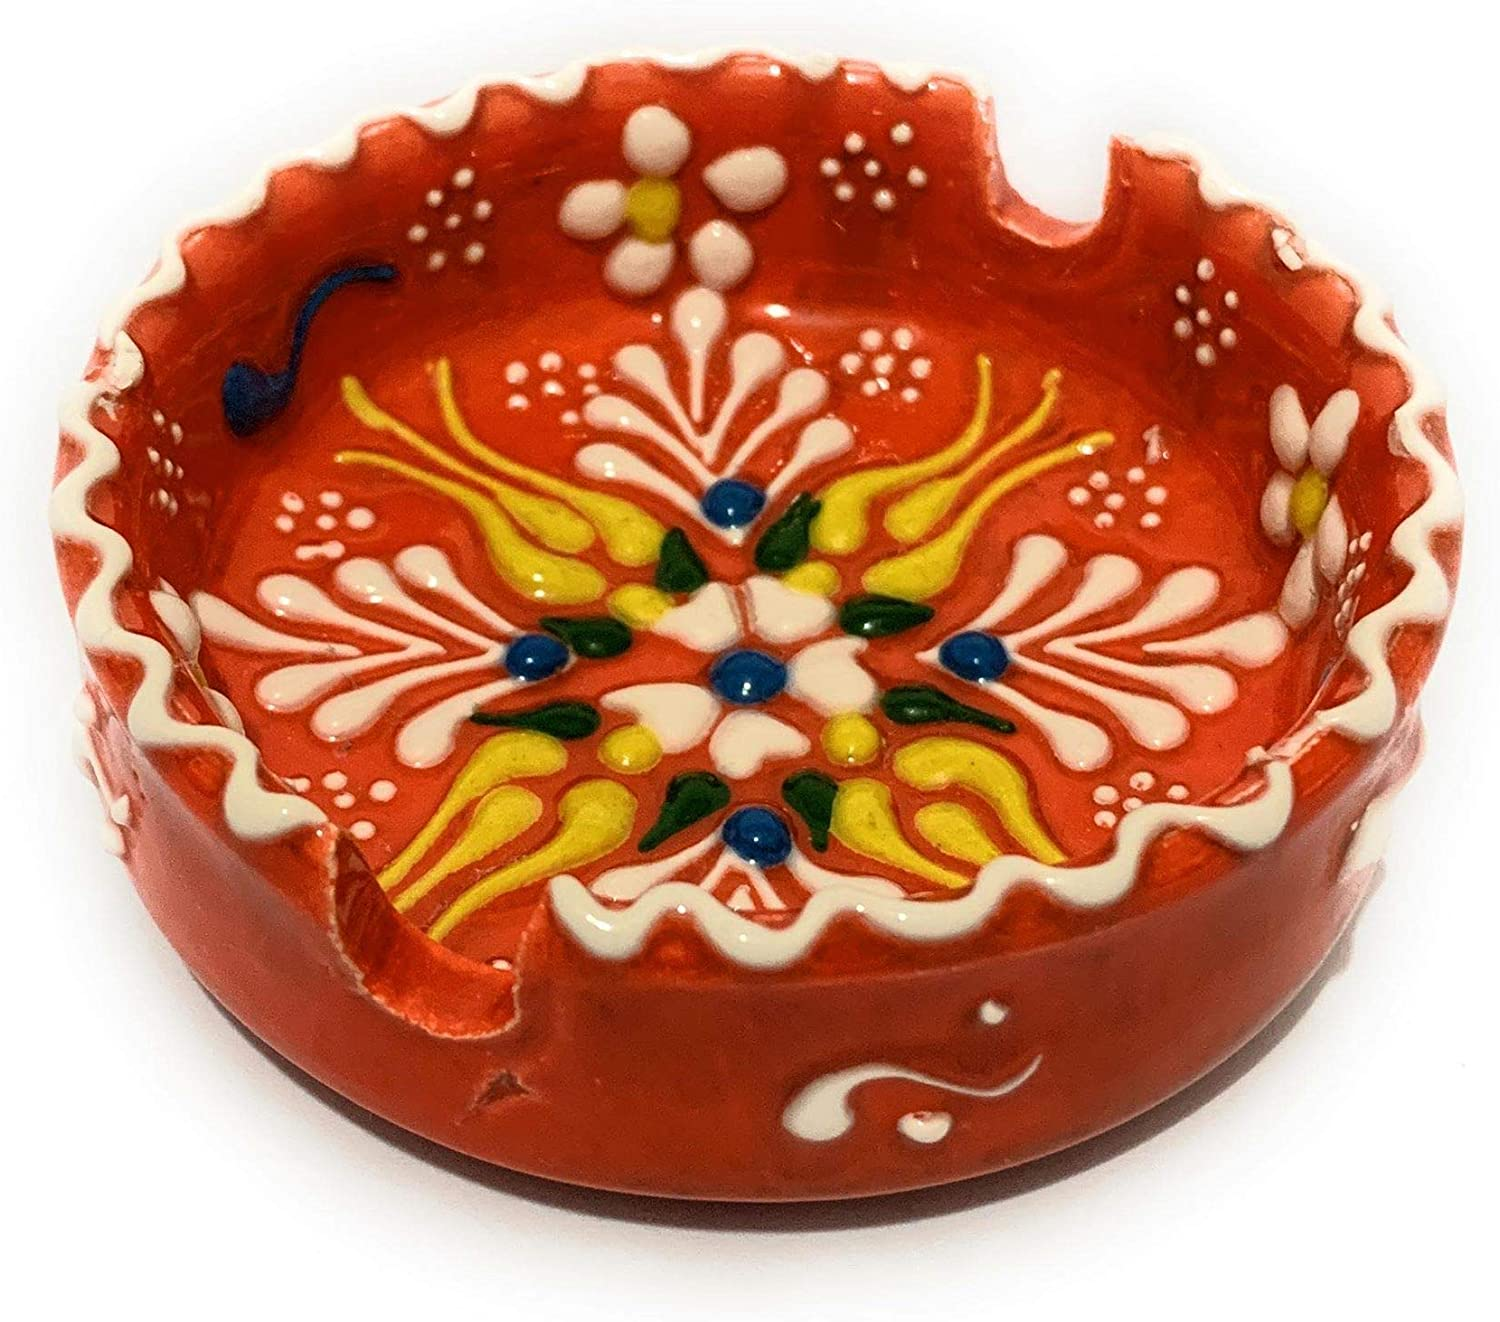 3'' Round Handcraft Ashtray Ceramic Ethnic Art Non Chemical Colors Used Home or Office Decoration Indoor or Outdoor Use Unique Asholder for Gift (Orange)